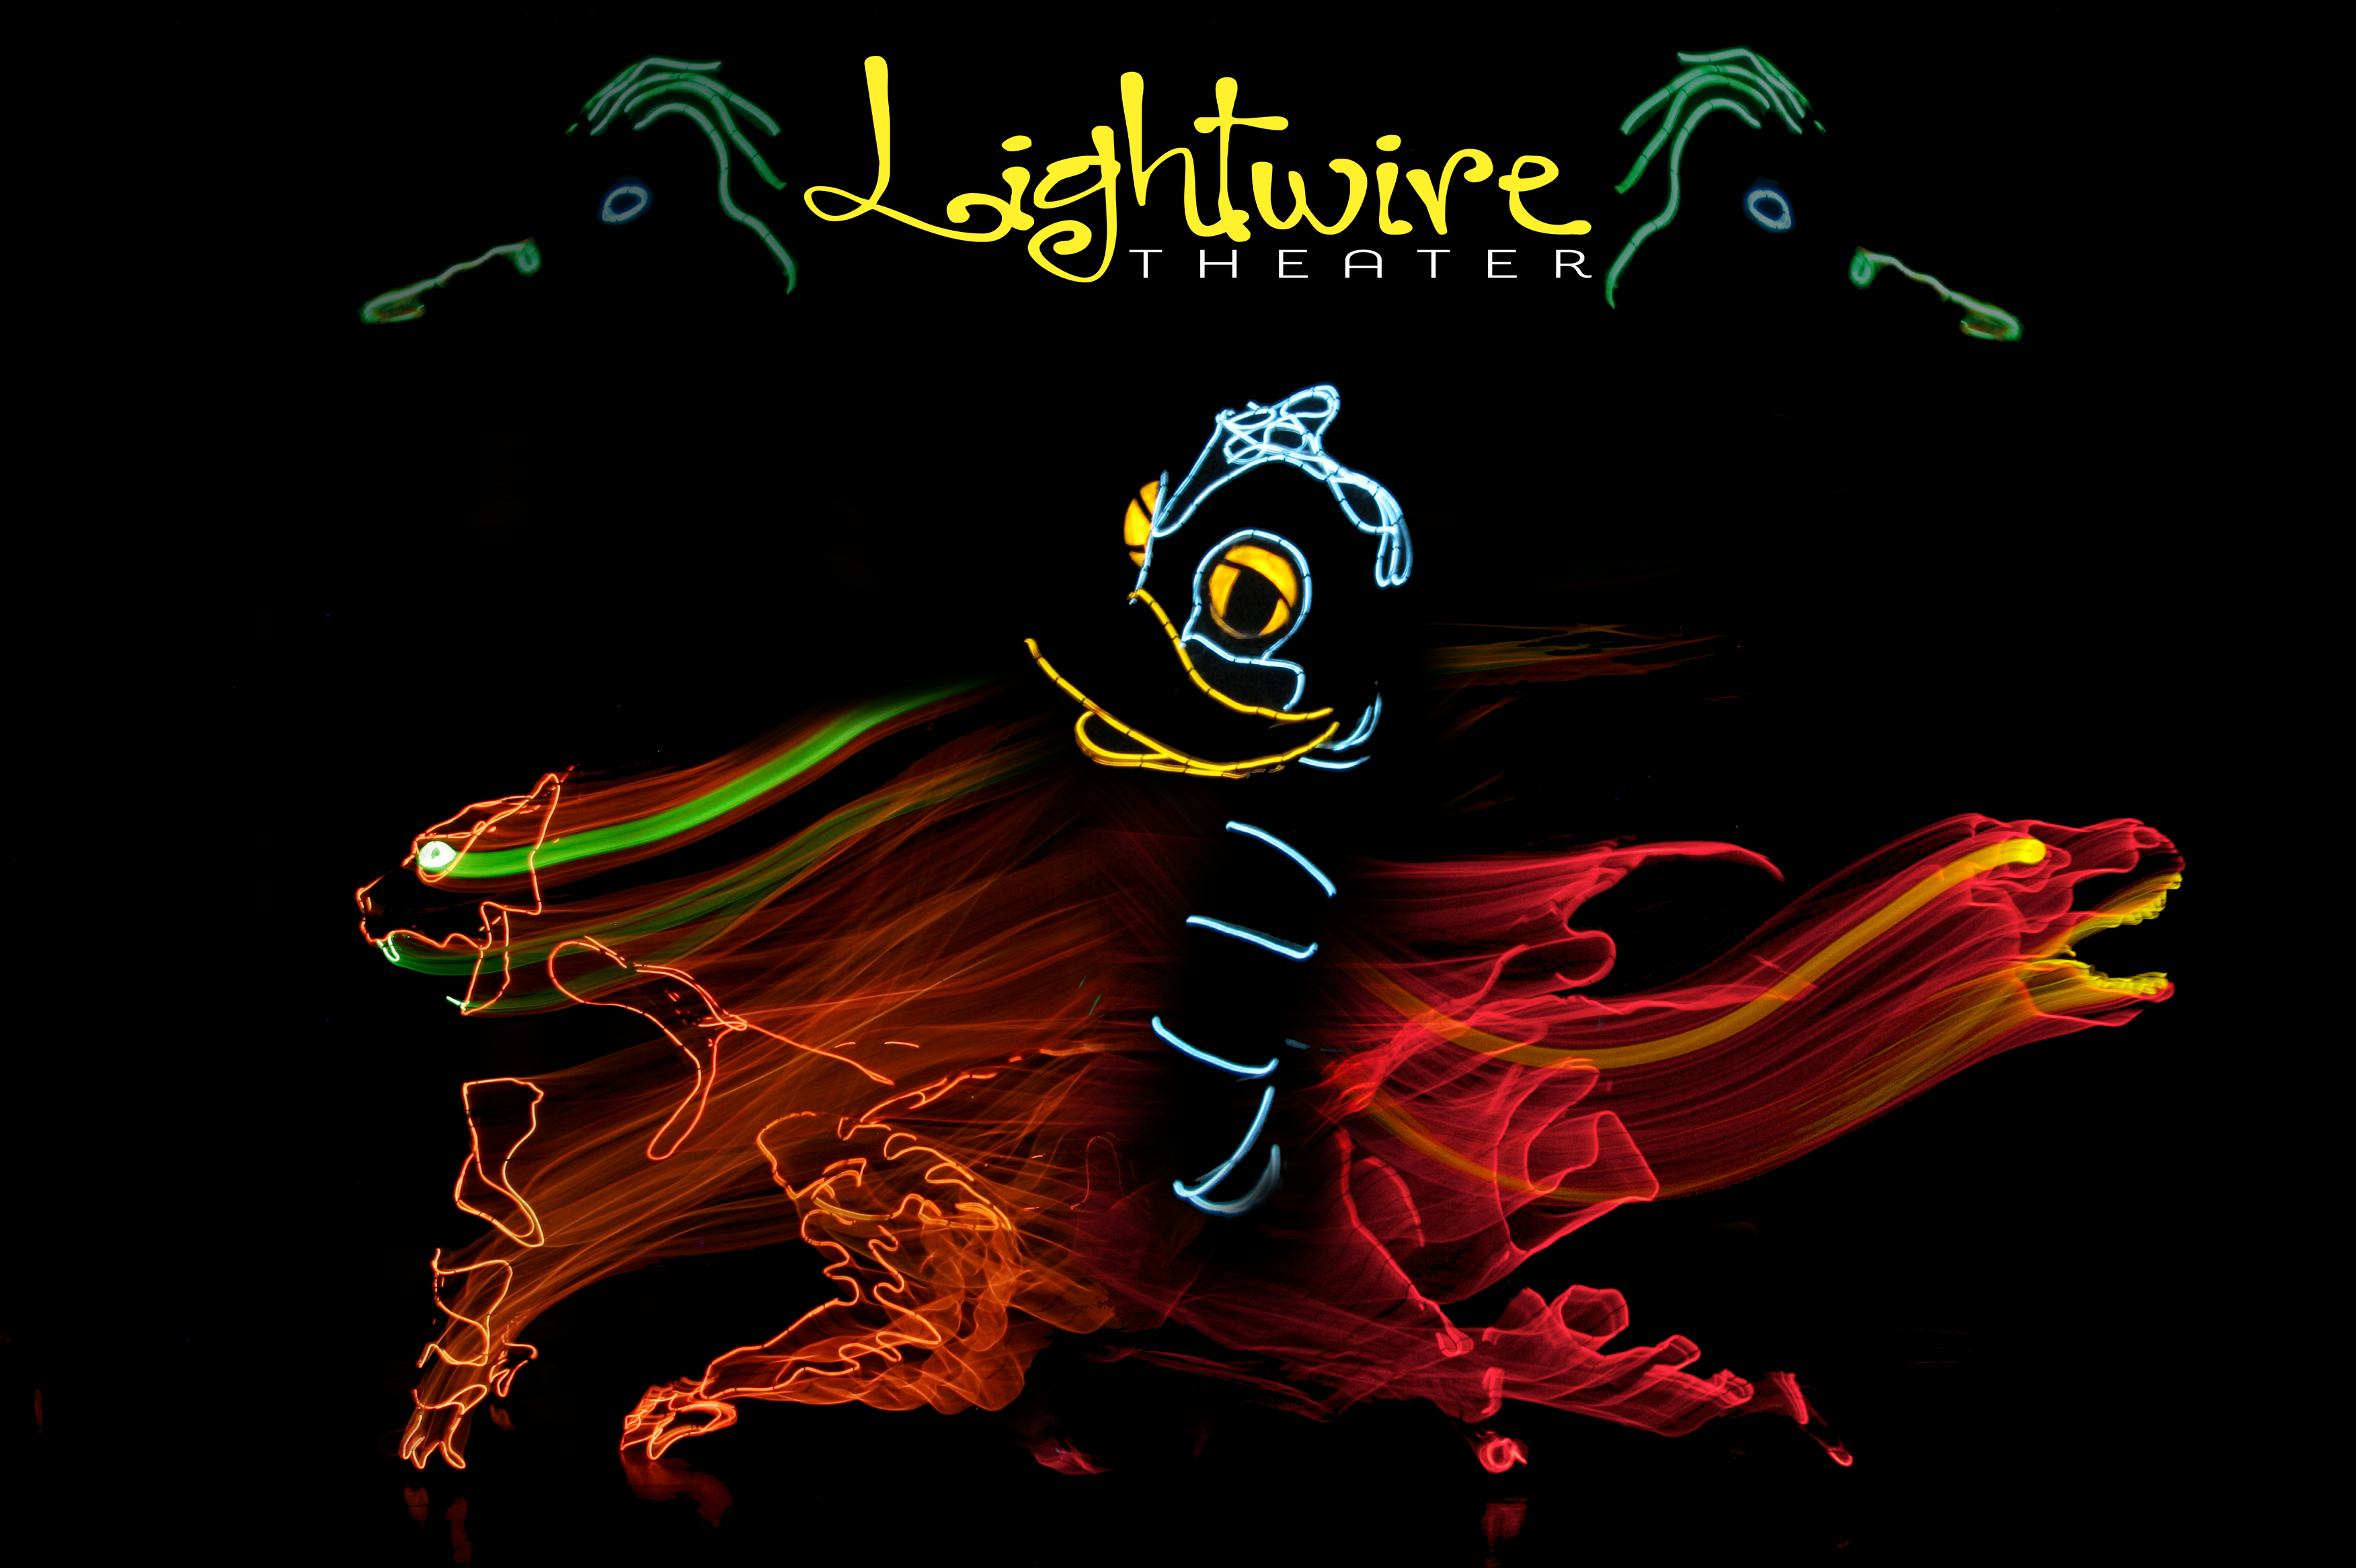 LightWire poster